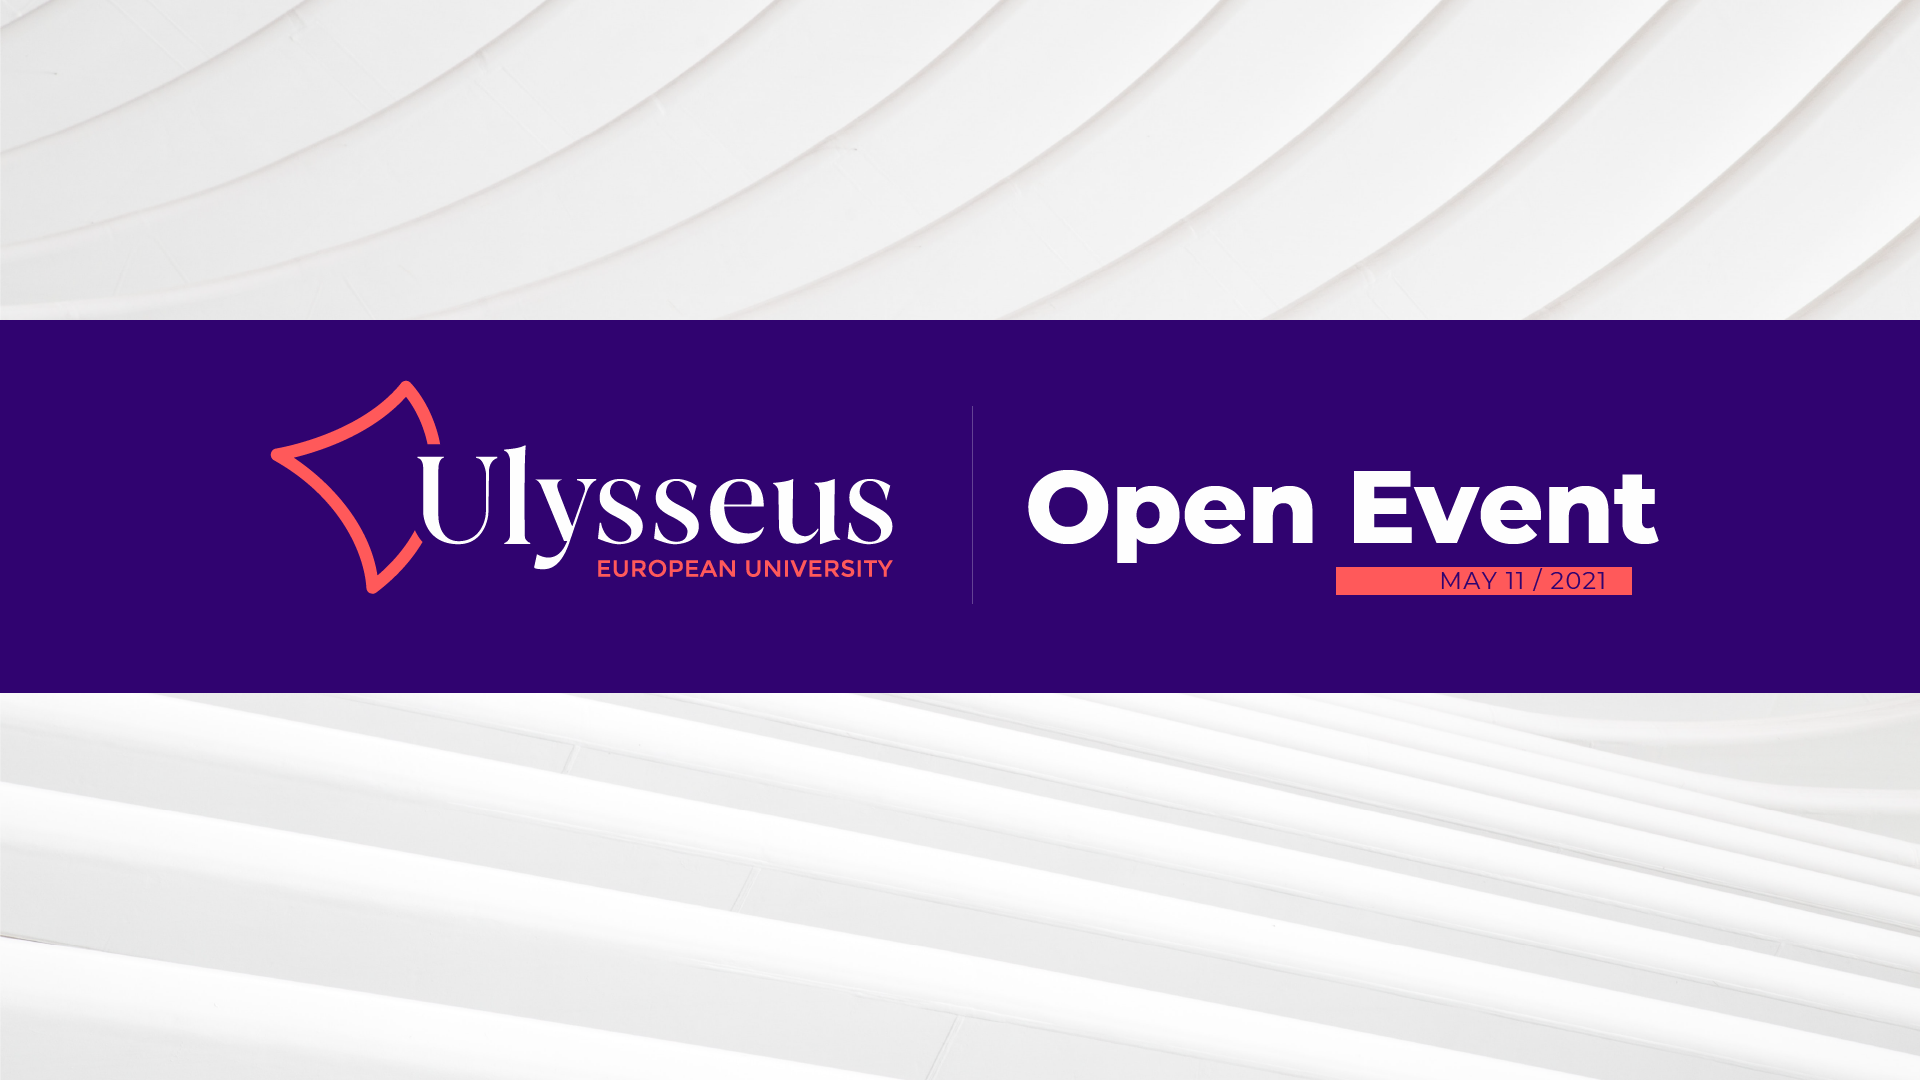 Registration for the Ulysseus Open Event on 11 May now open